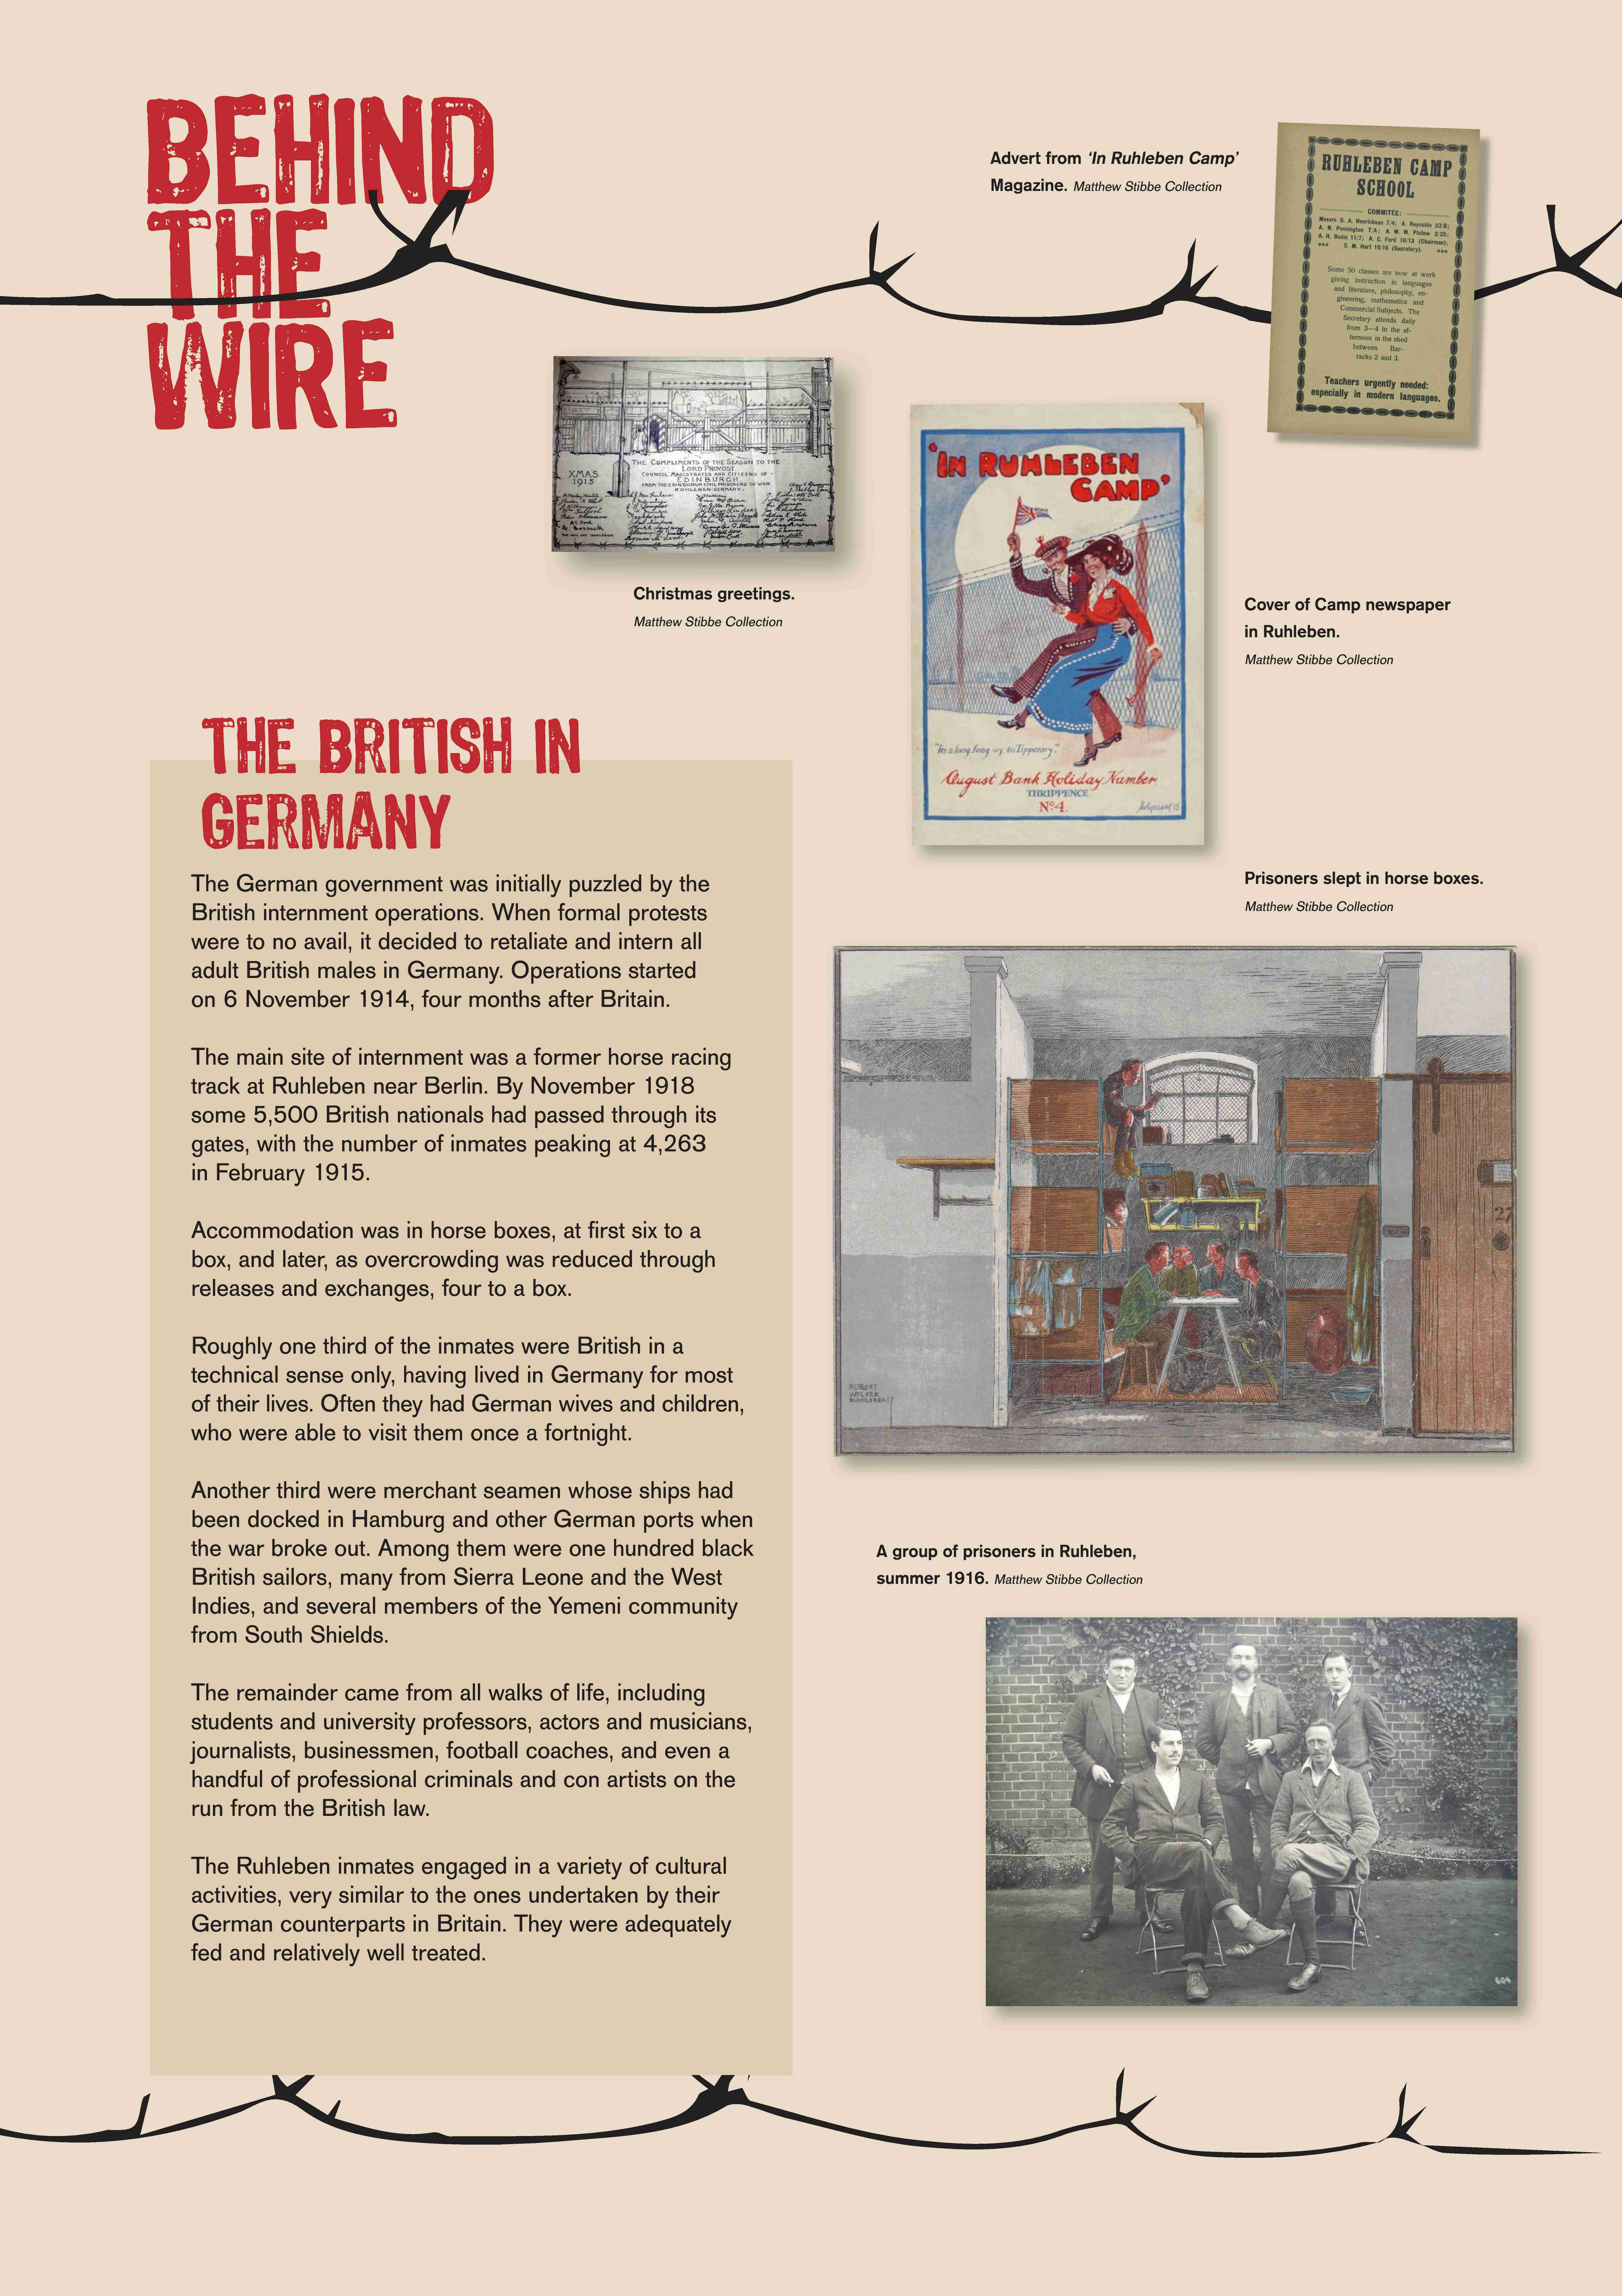 17-Behind the Wire-A1-Exhibition-British in Germany_DIGITAL VERSION-page-001-min-compressed